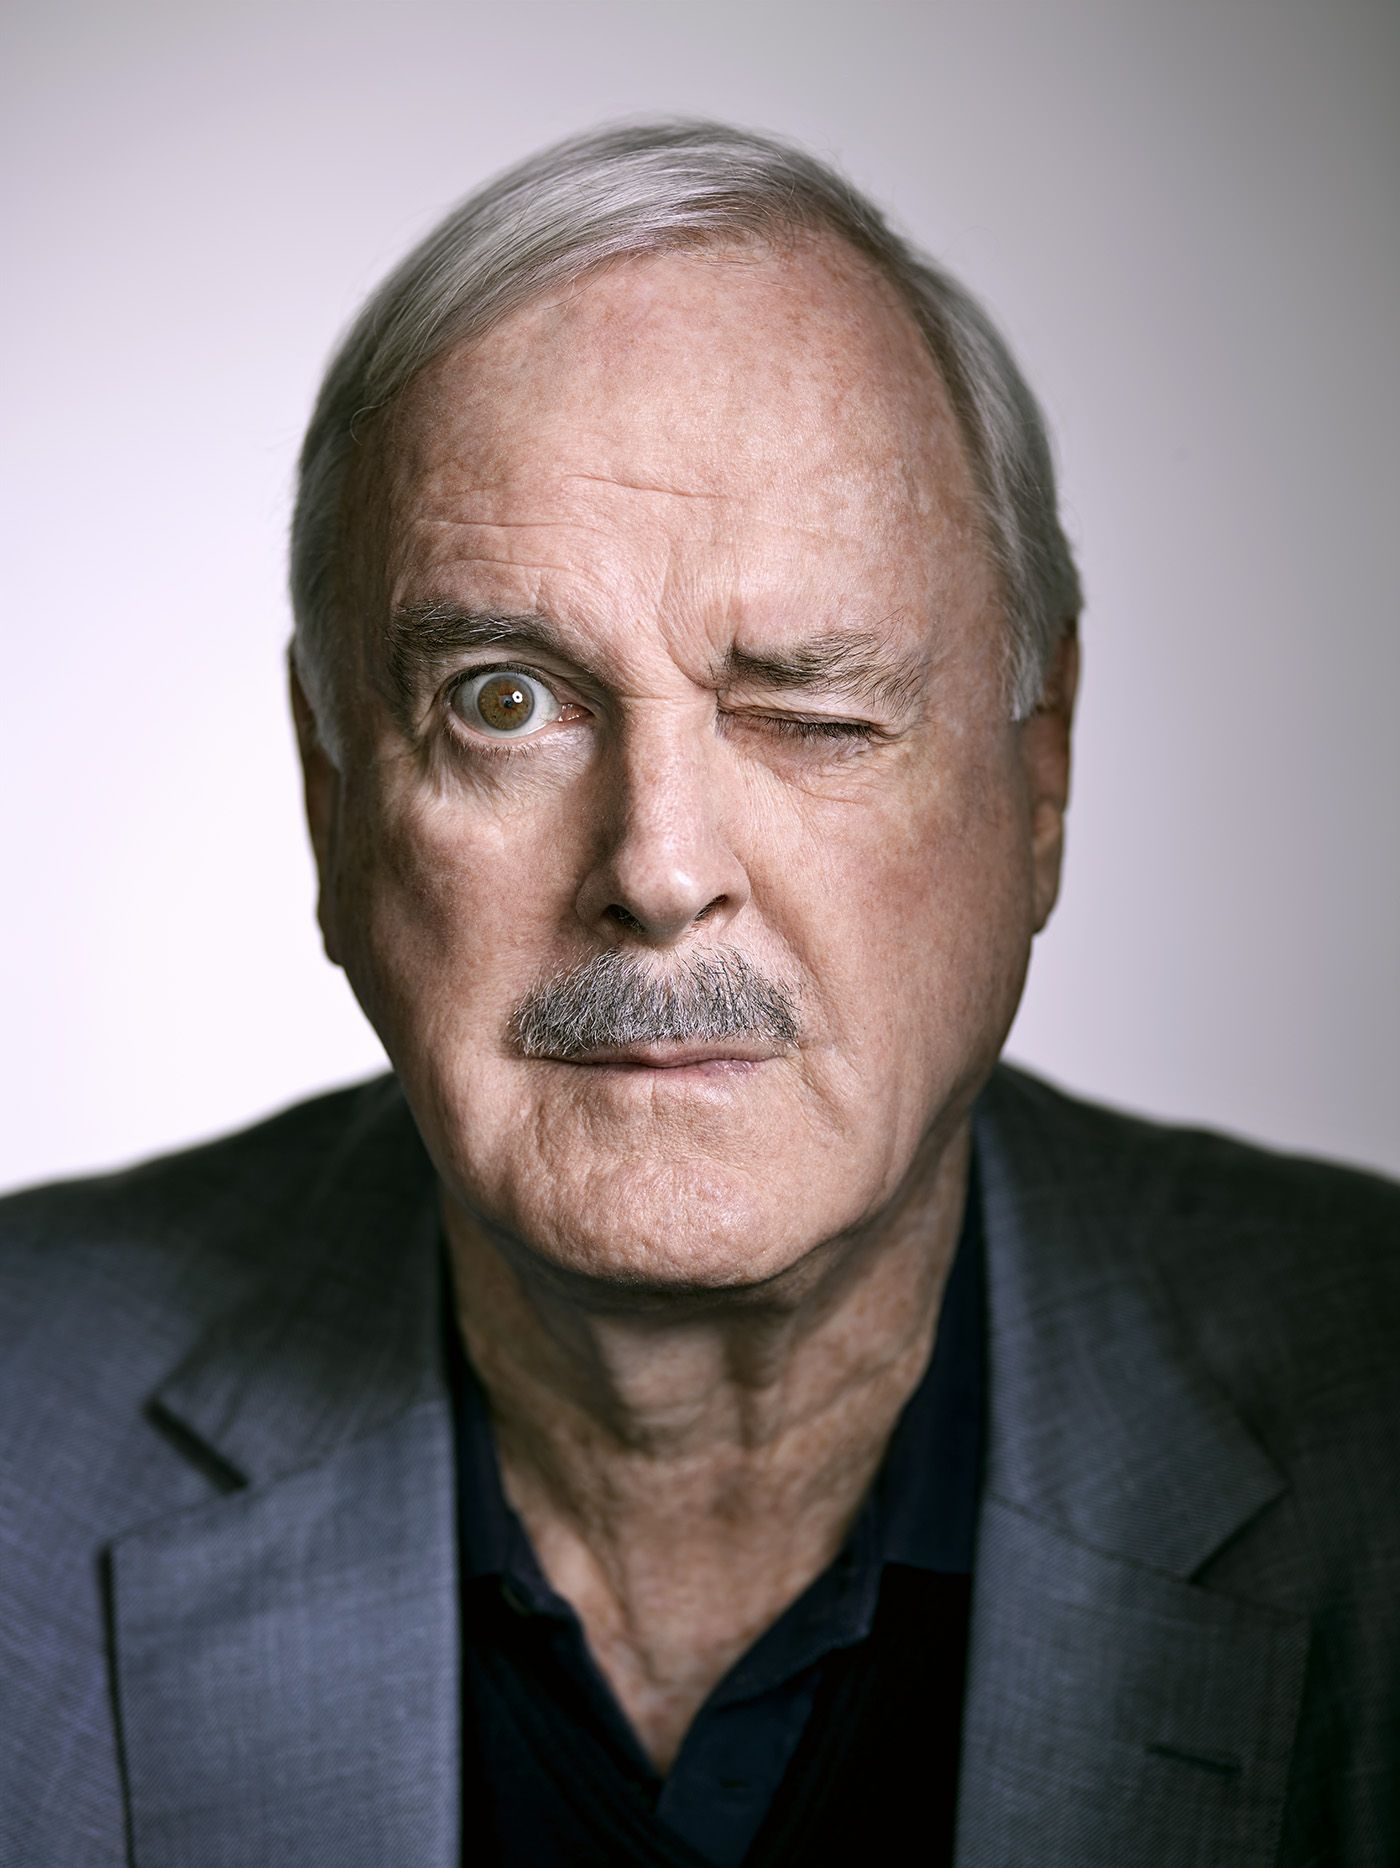 pictures John Cleese (born 1939)